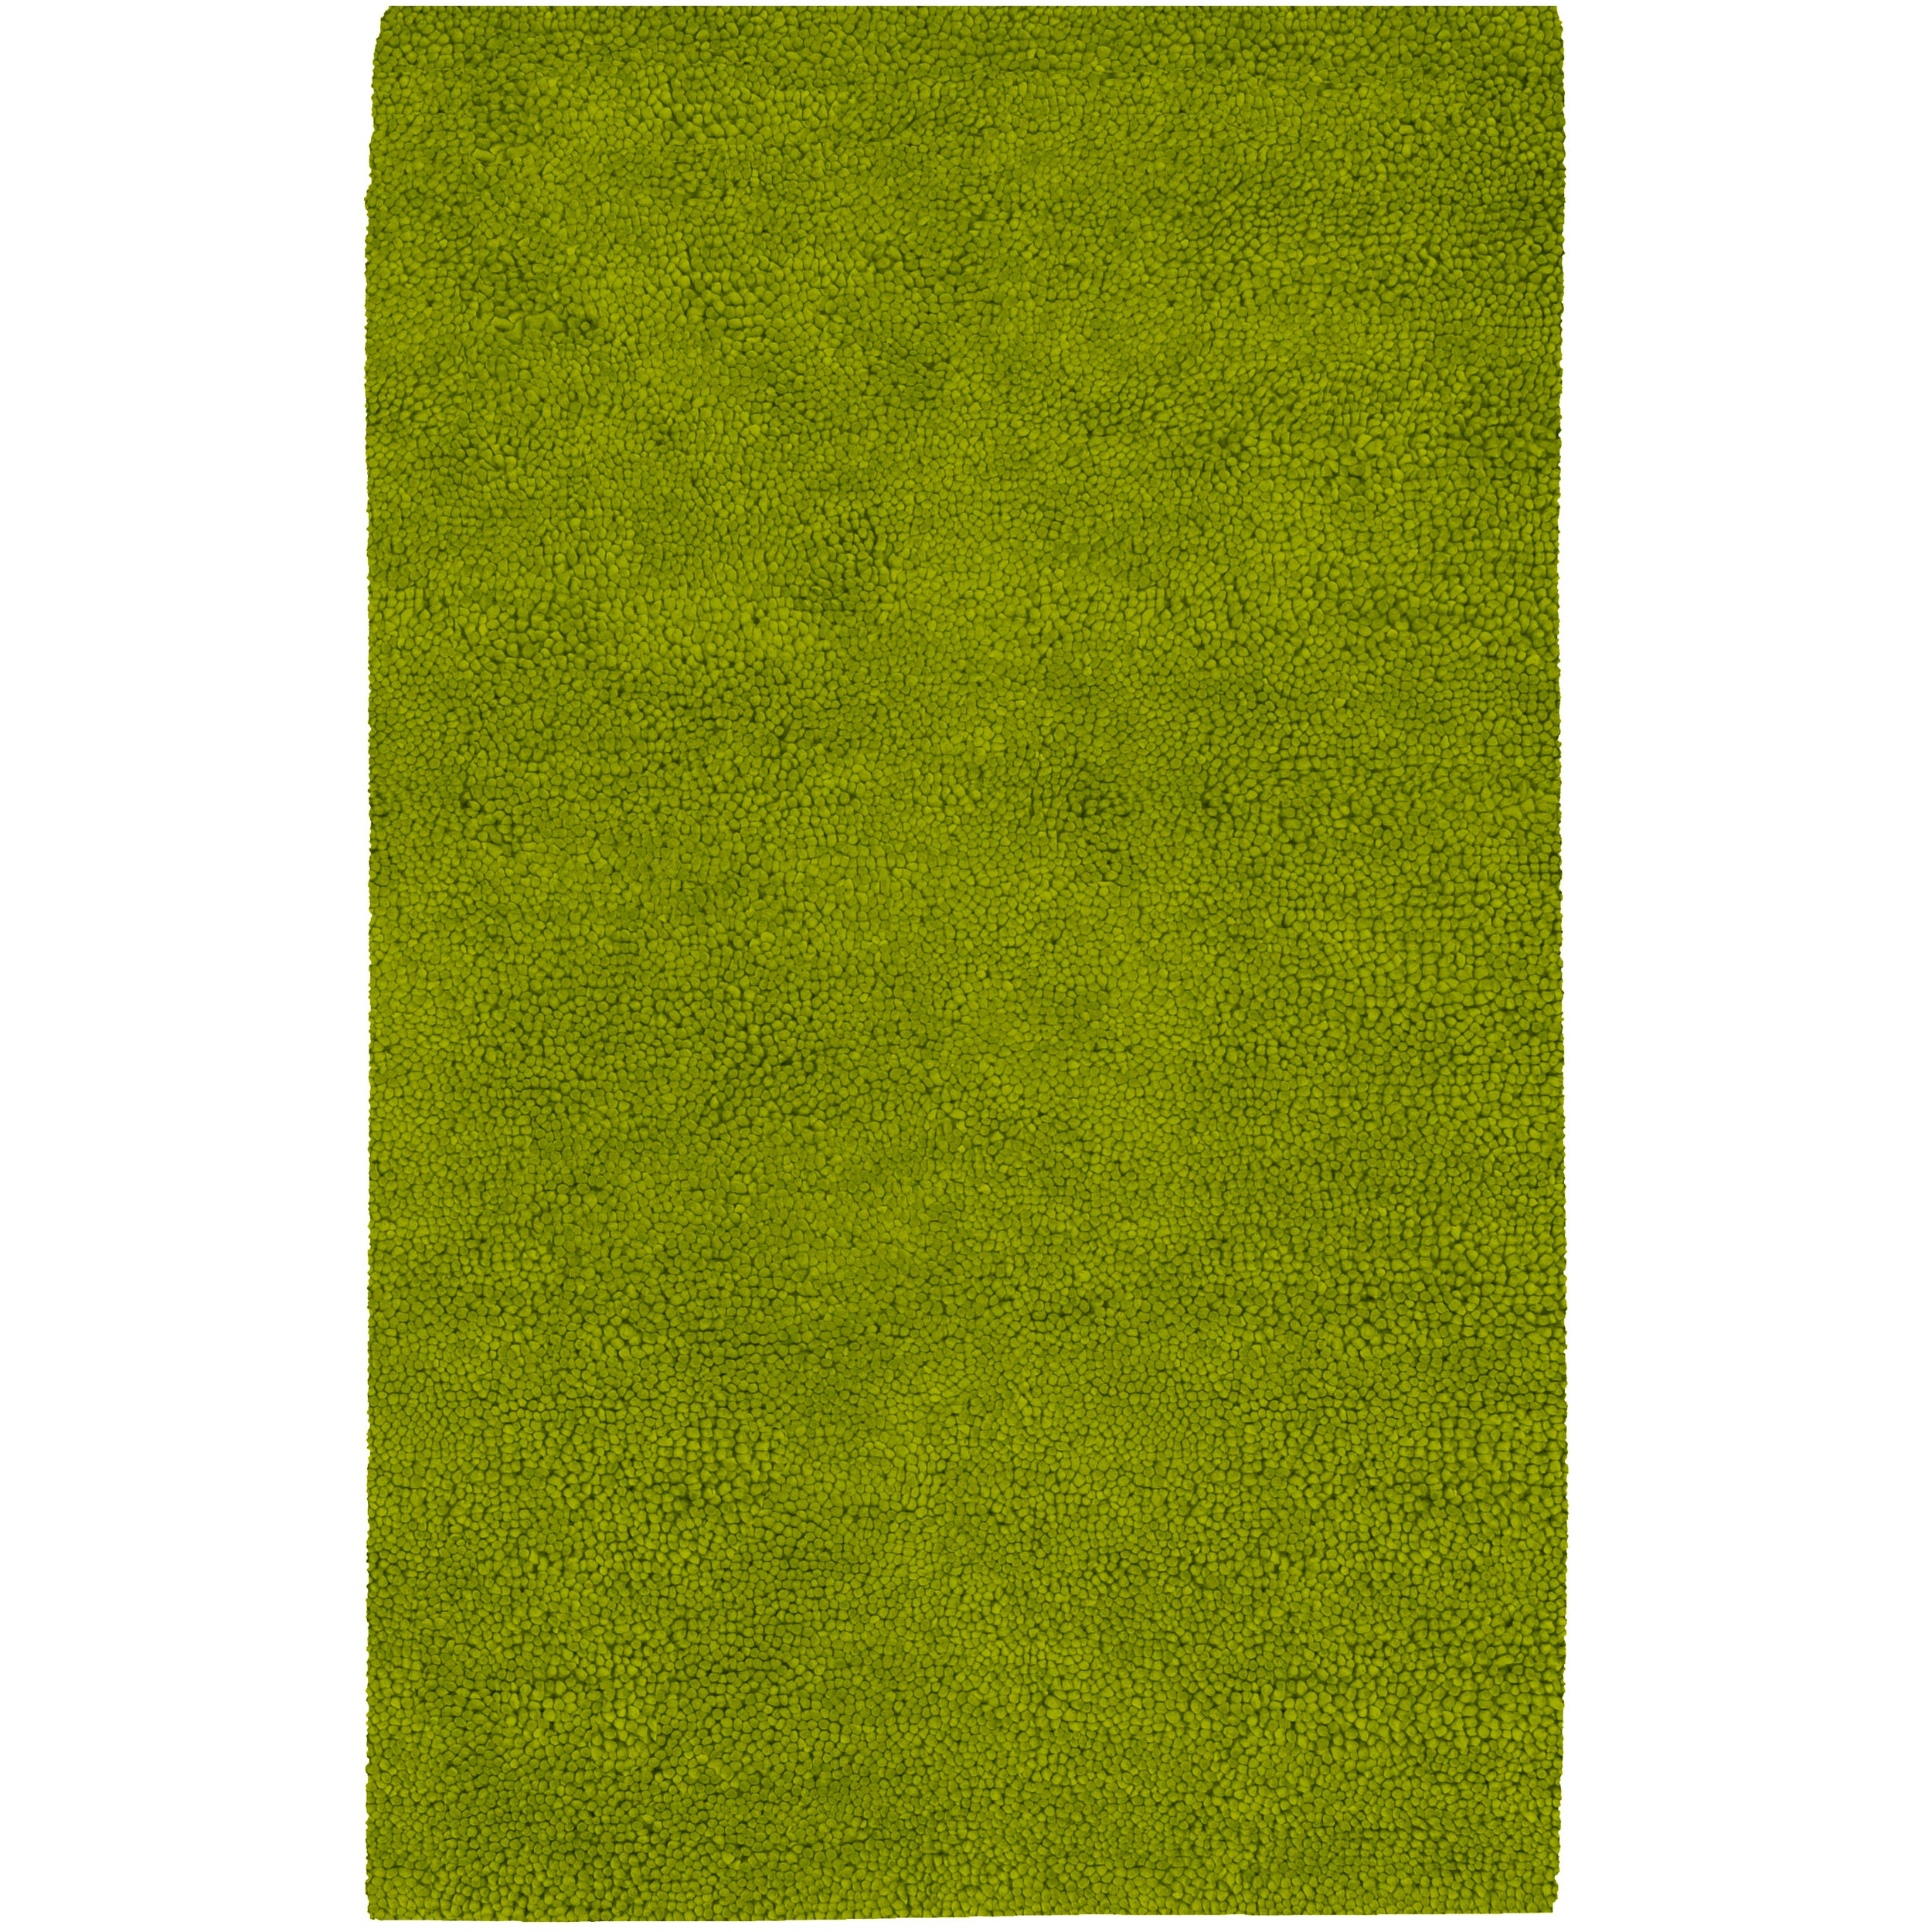 Hand-woven Pavia Colorful Plush Shag New Zealand Felted Wool Rug ( 3'6 x 5'6 )